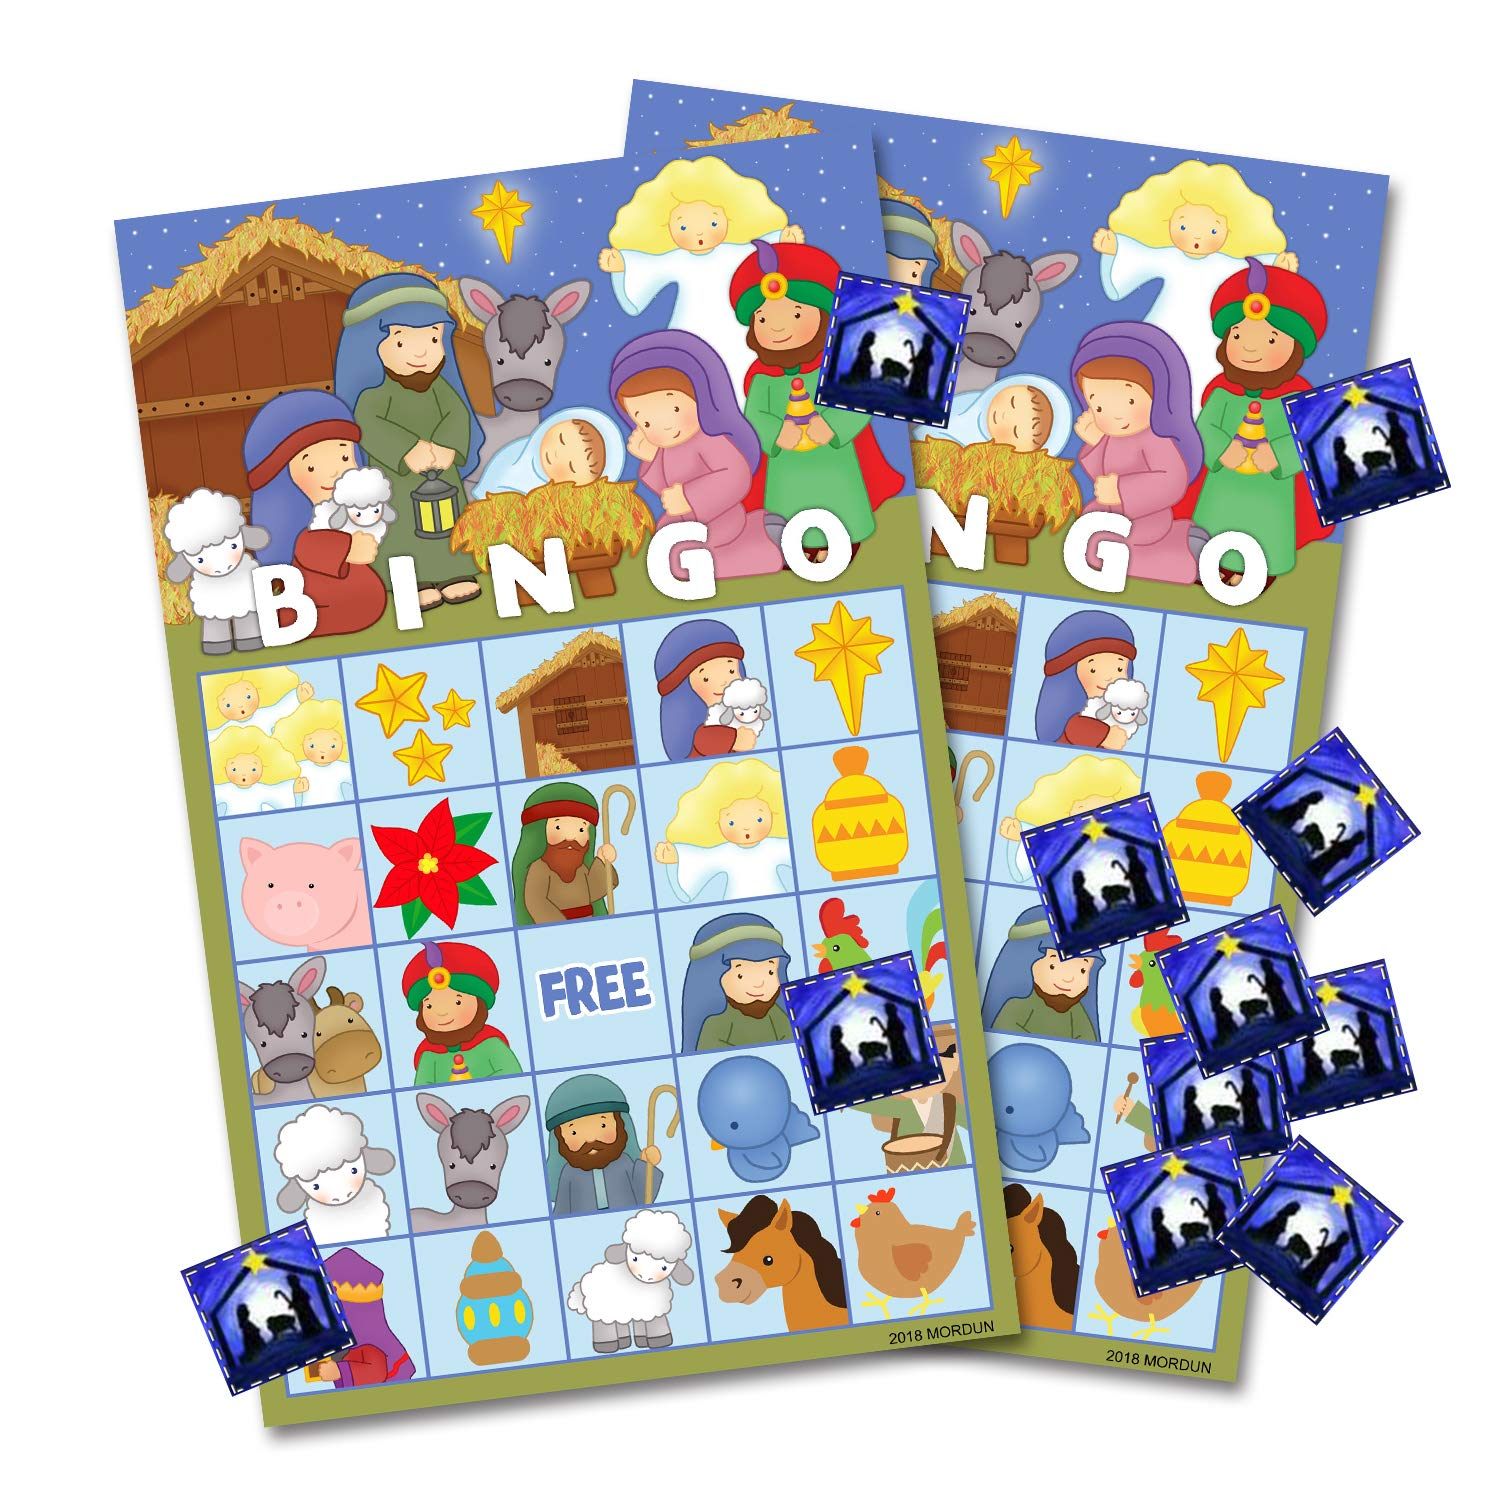 Religious Christmas Cards For Kids.Christmas Nativity Bingo Game Cards For Kids 24 Players Preschool Activity Religious Party Game For Classroom Family